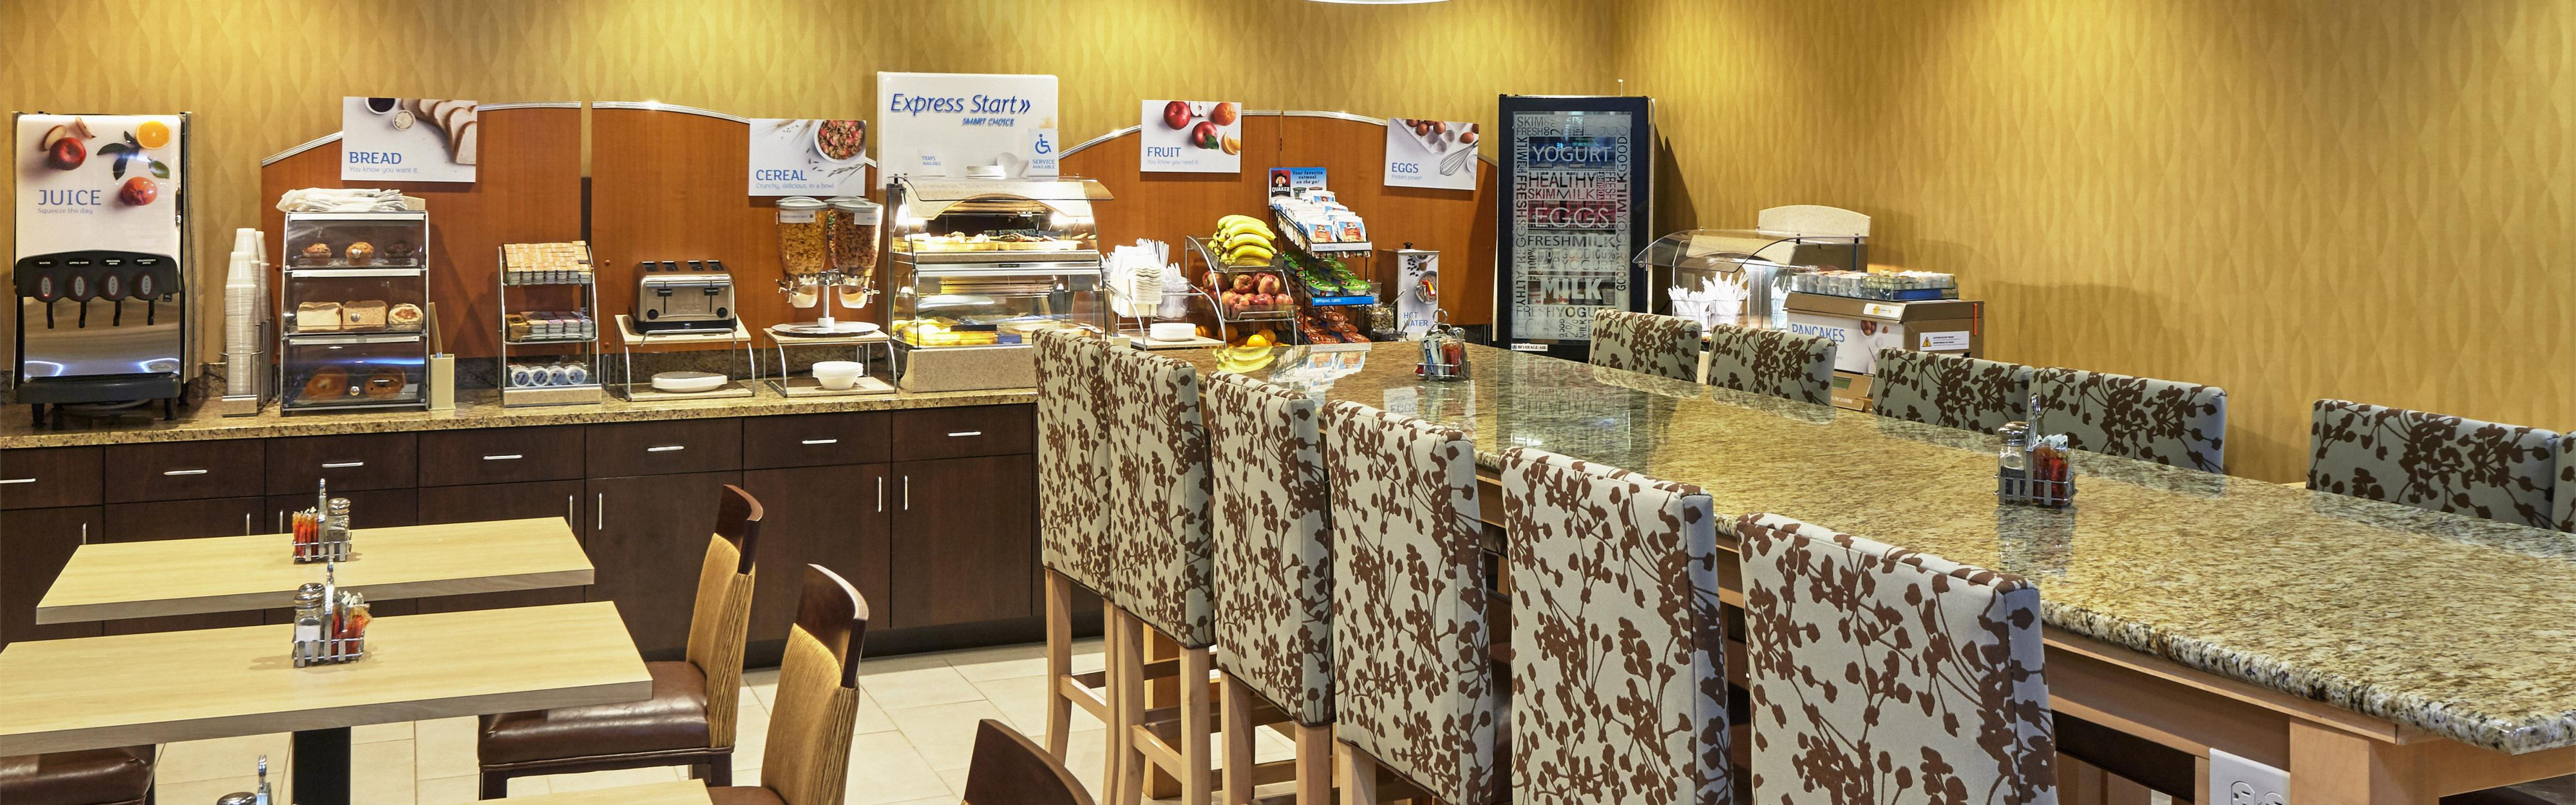 Holiday Inn Express & Suites Chicago-Libertyville image 3